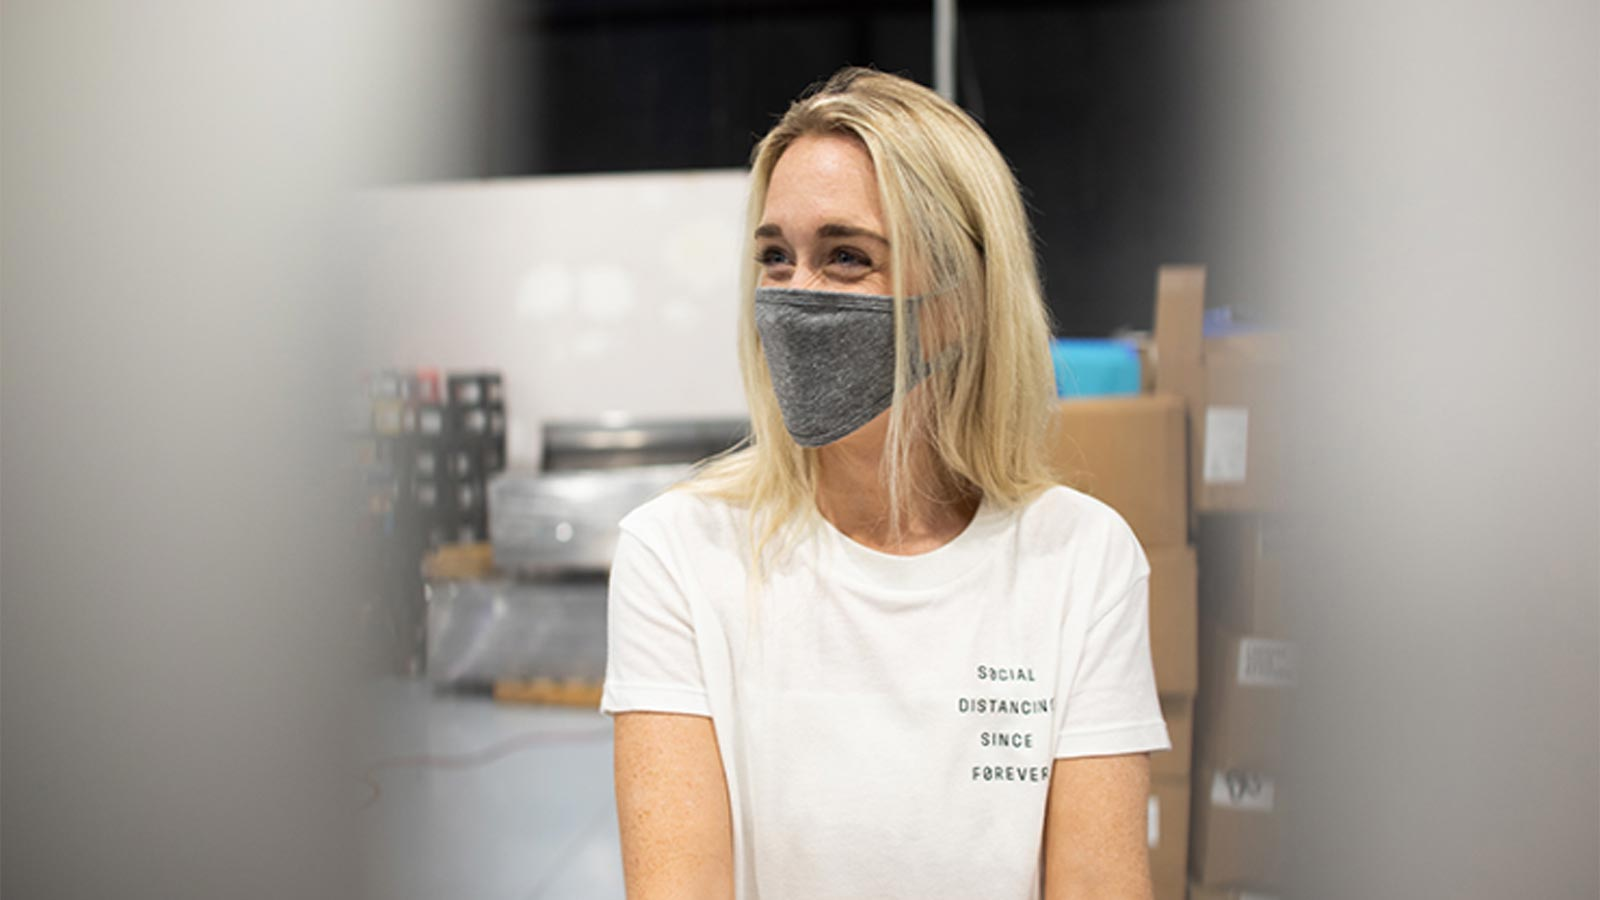 The Sustainable Case for Cloth Face Masks